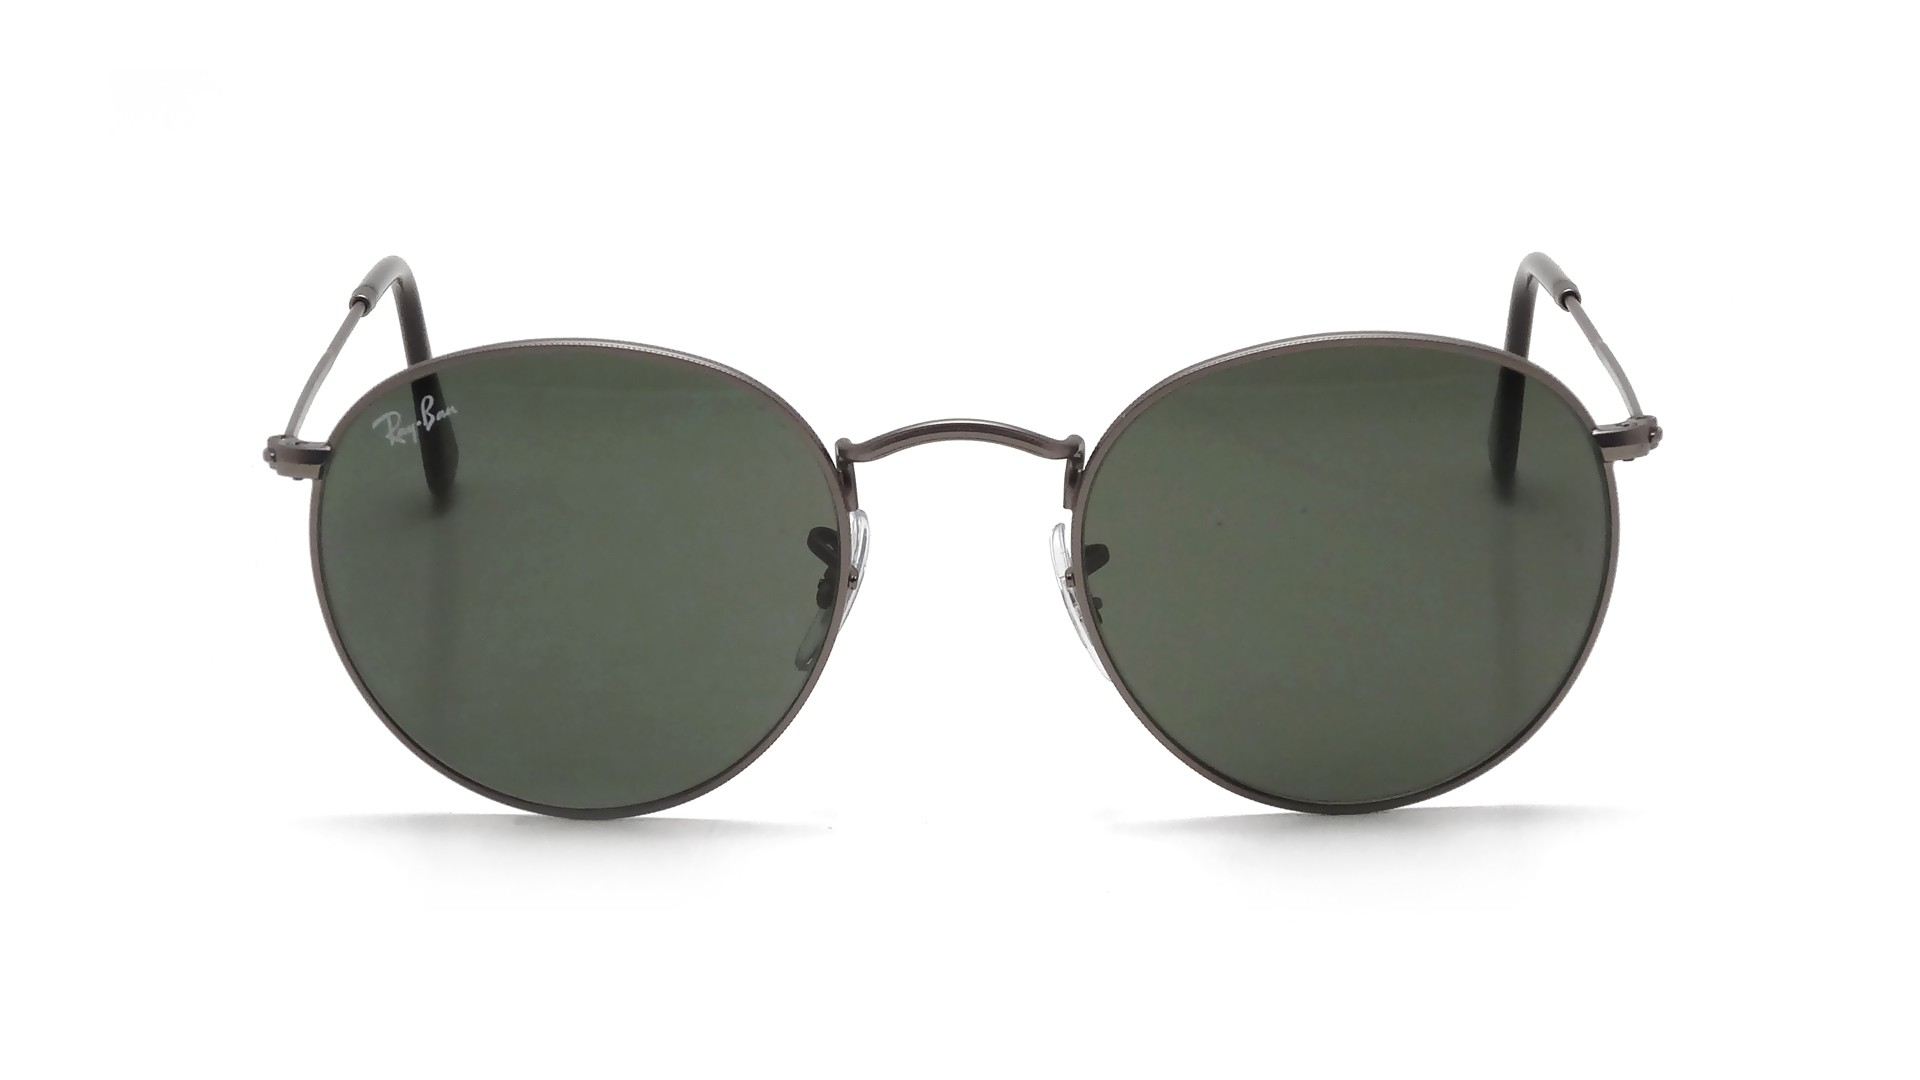 bef647712b0 Ray Bans Round Metal Amazon - Bitterroot Public Library